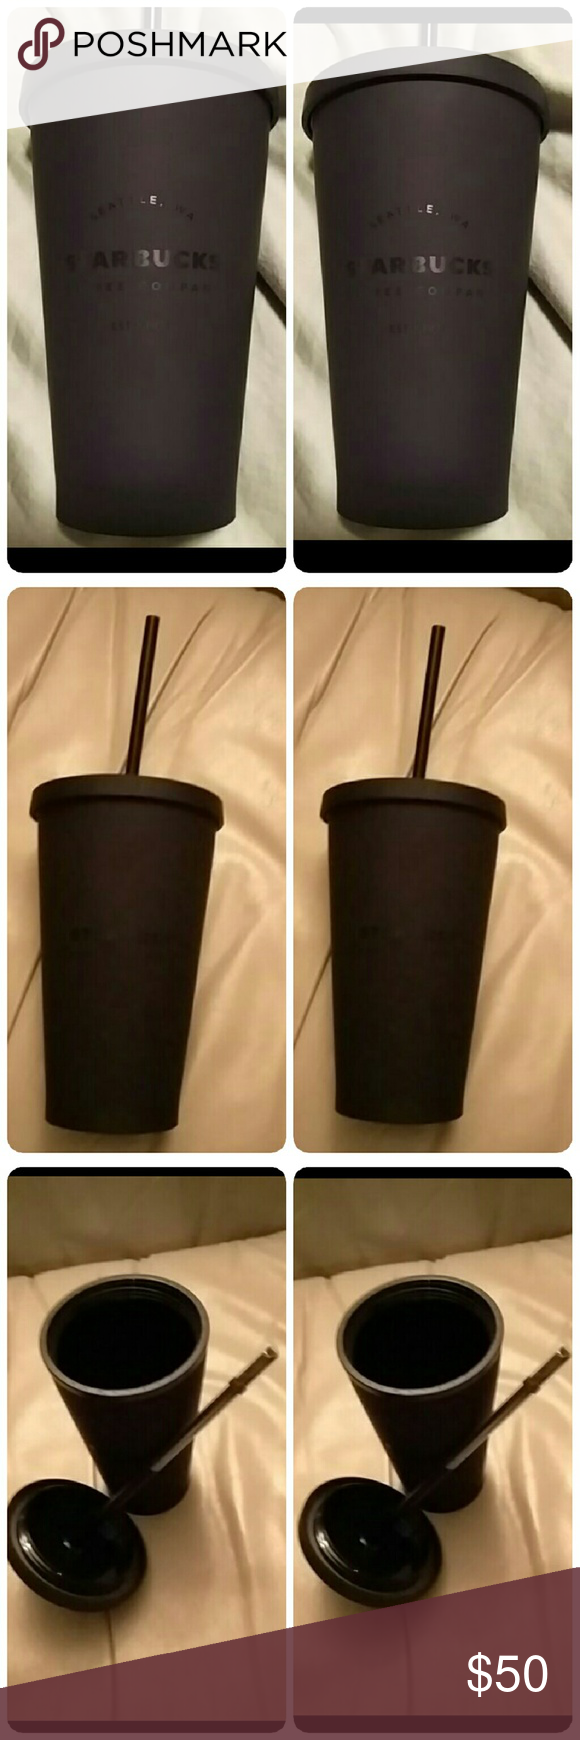 2 x Starbucks matte black 16 oz cold cup 2 x Starbucks matte black 16 ounce cold cup  New in package Are you in search of this? ISO? No trades or returns Starbucks Other